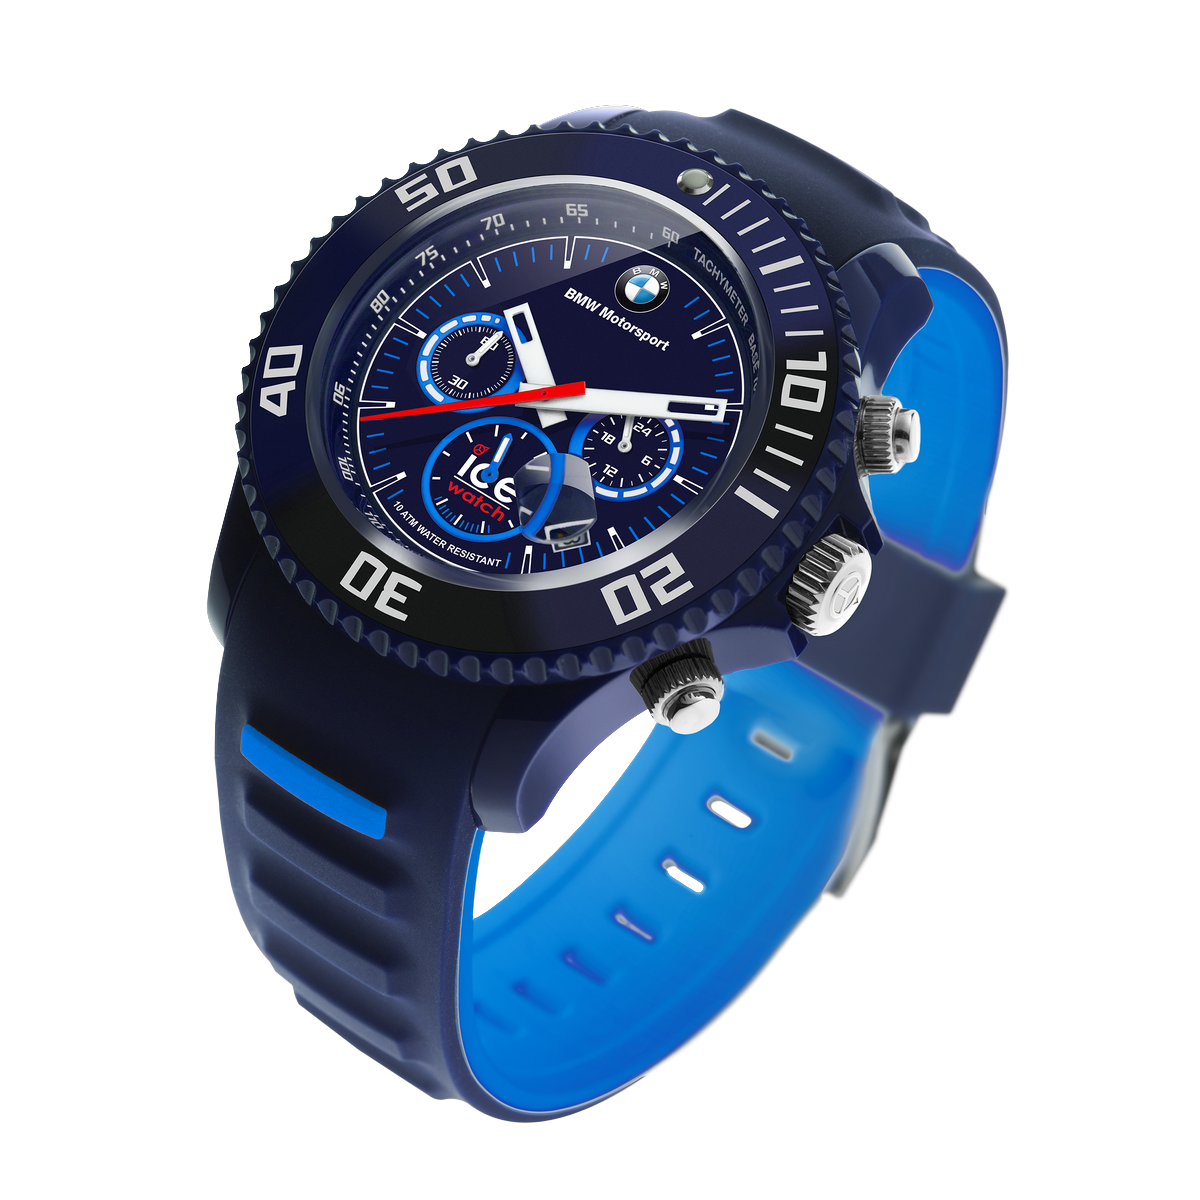 montres hommes bmw montre homme ice watch bmw chrono bleu nuit mini montre bracelet bmw homme montre. Black Bedroom Furniture Sets. Home Design Ideas